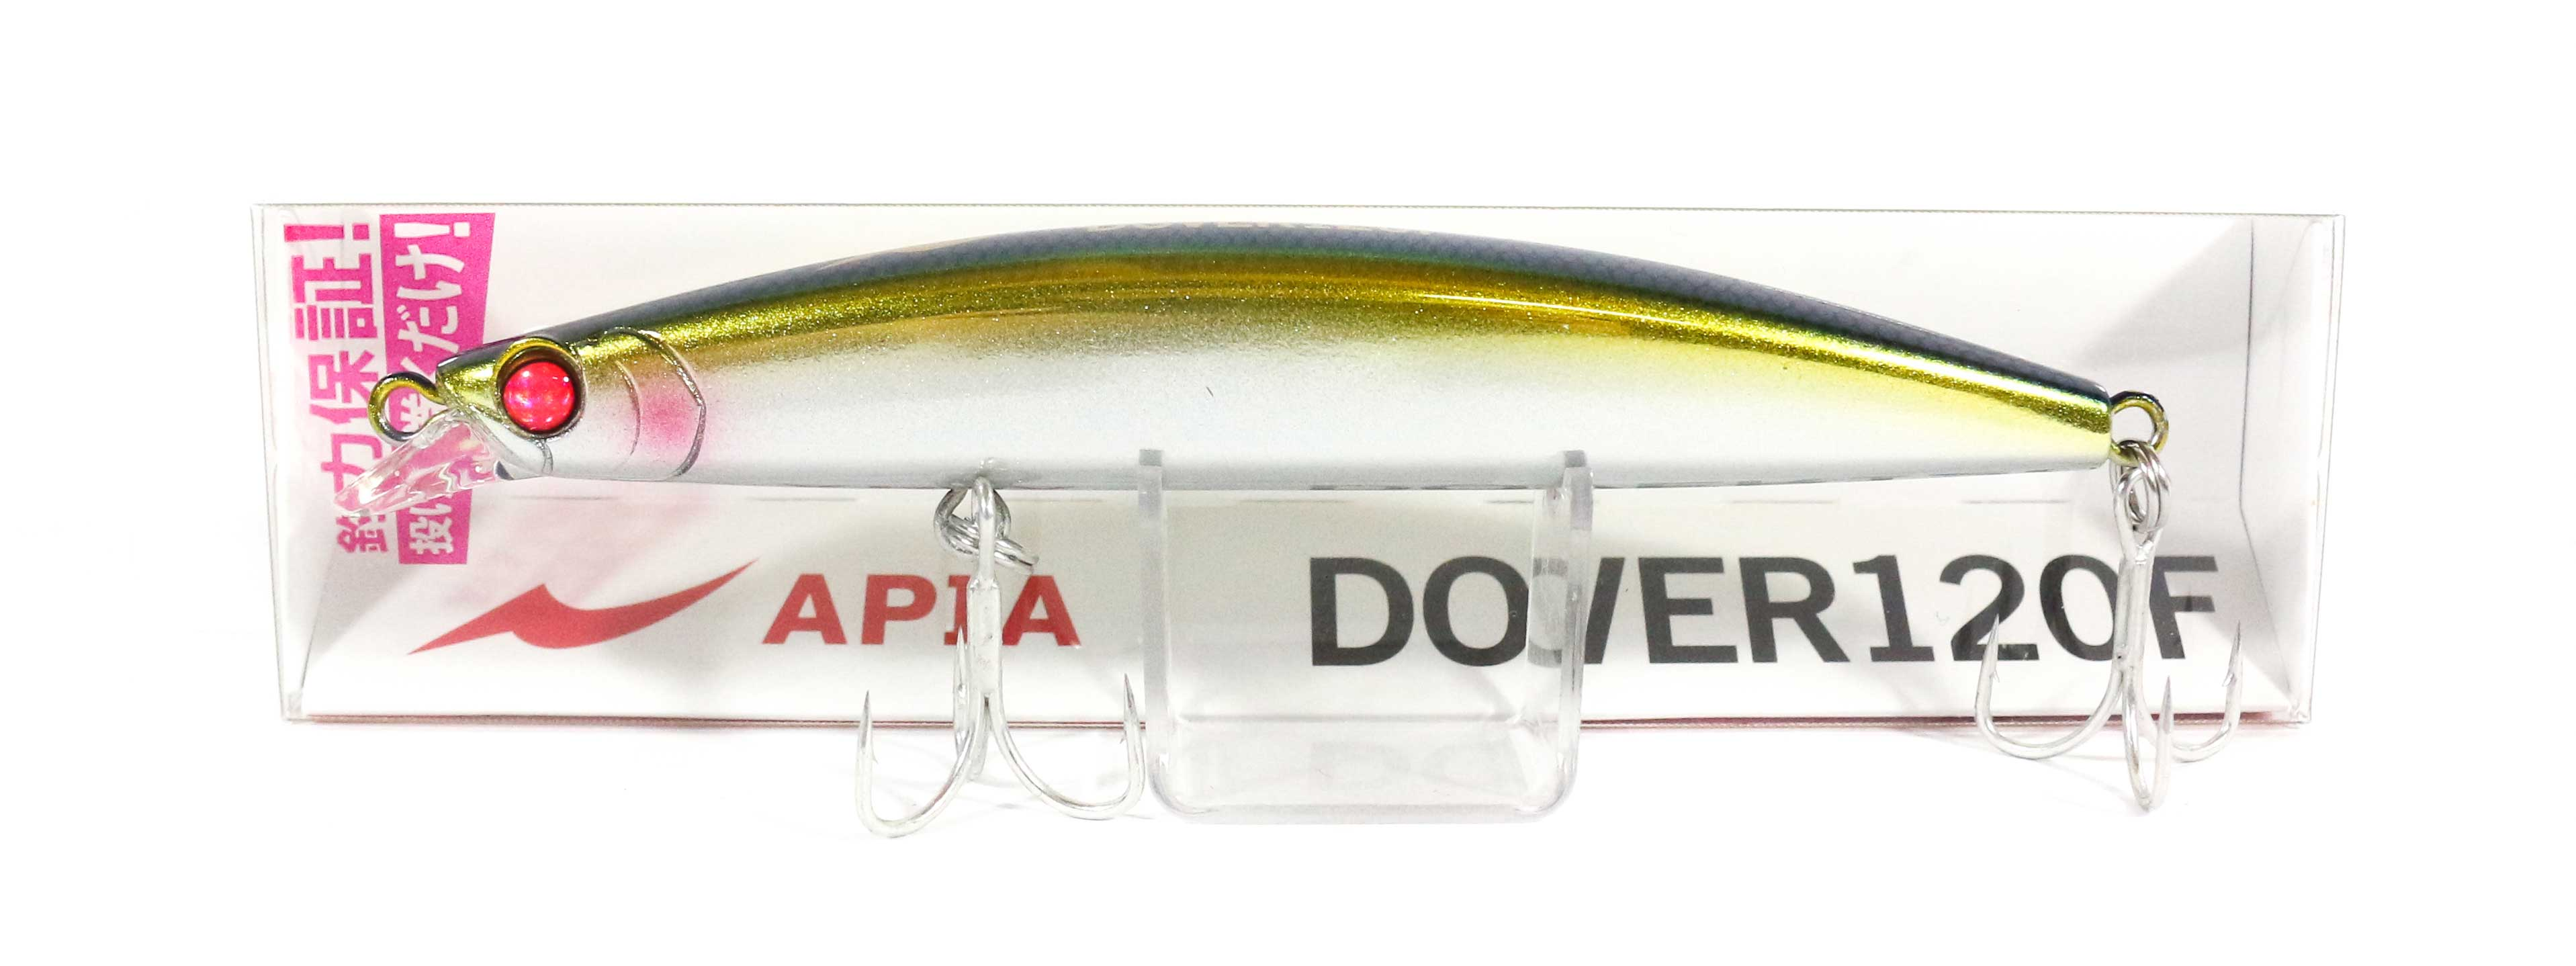 Apia Dover 120 F Floating Lure 01 (0485)